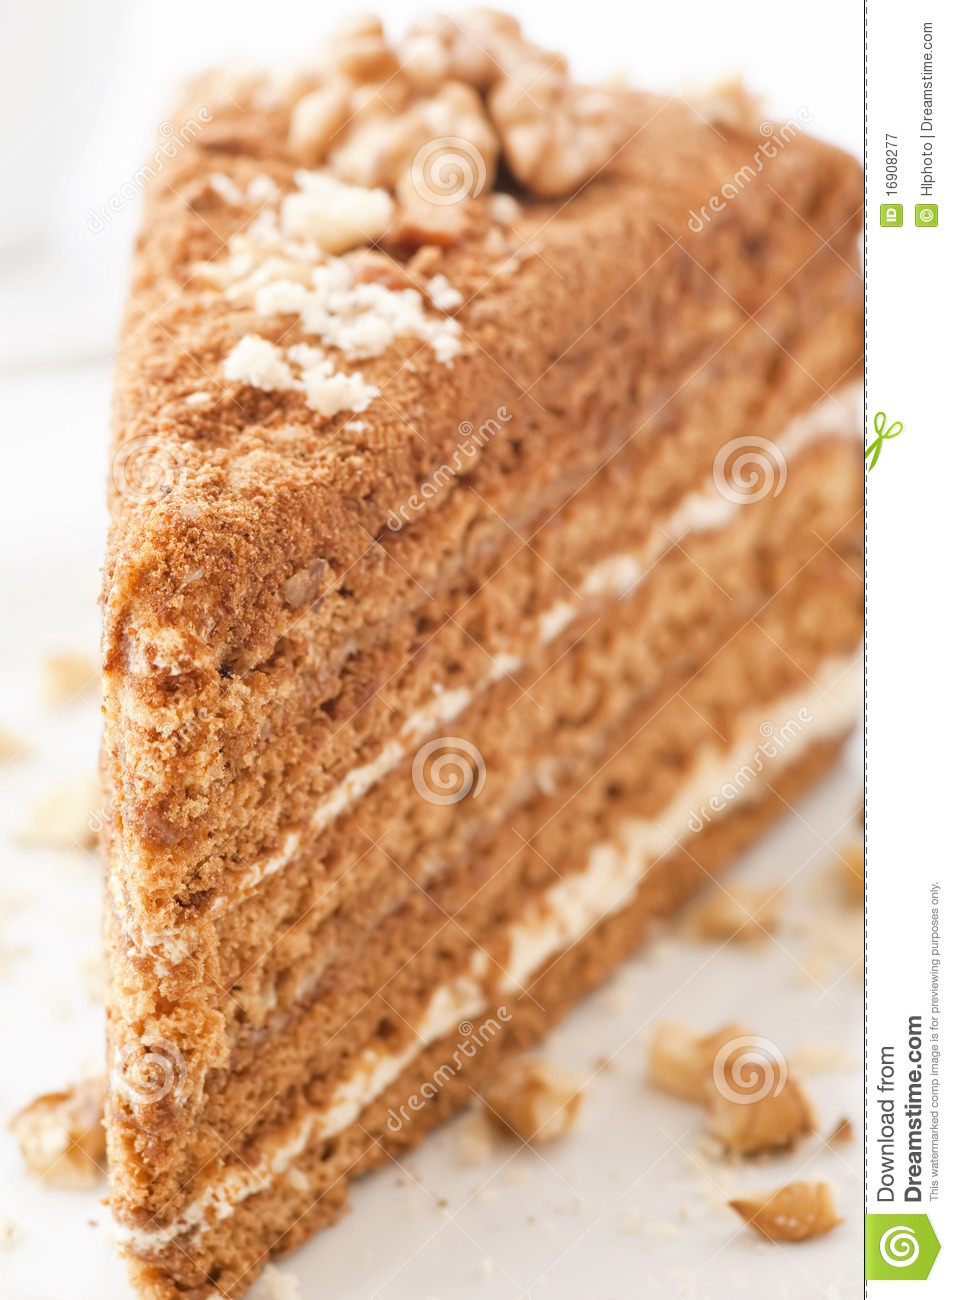 Clipart Of Honey Cake : Honey Cake Royalty Free Stock Photography - Image: 16908277